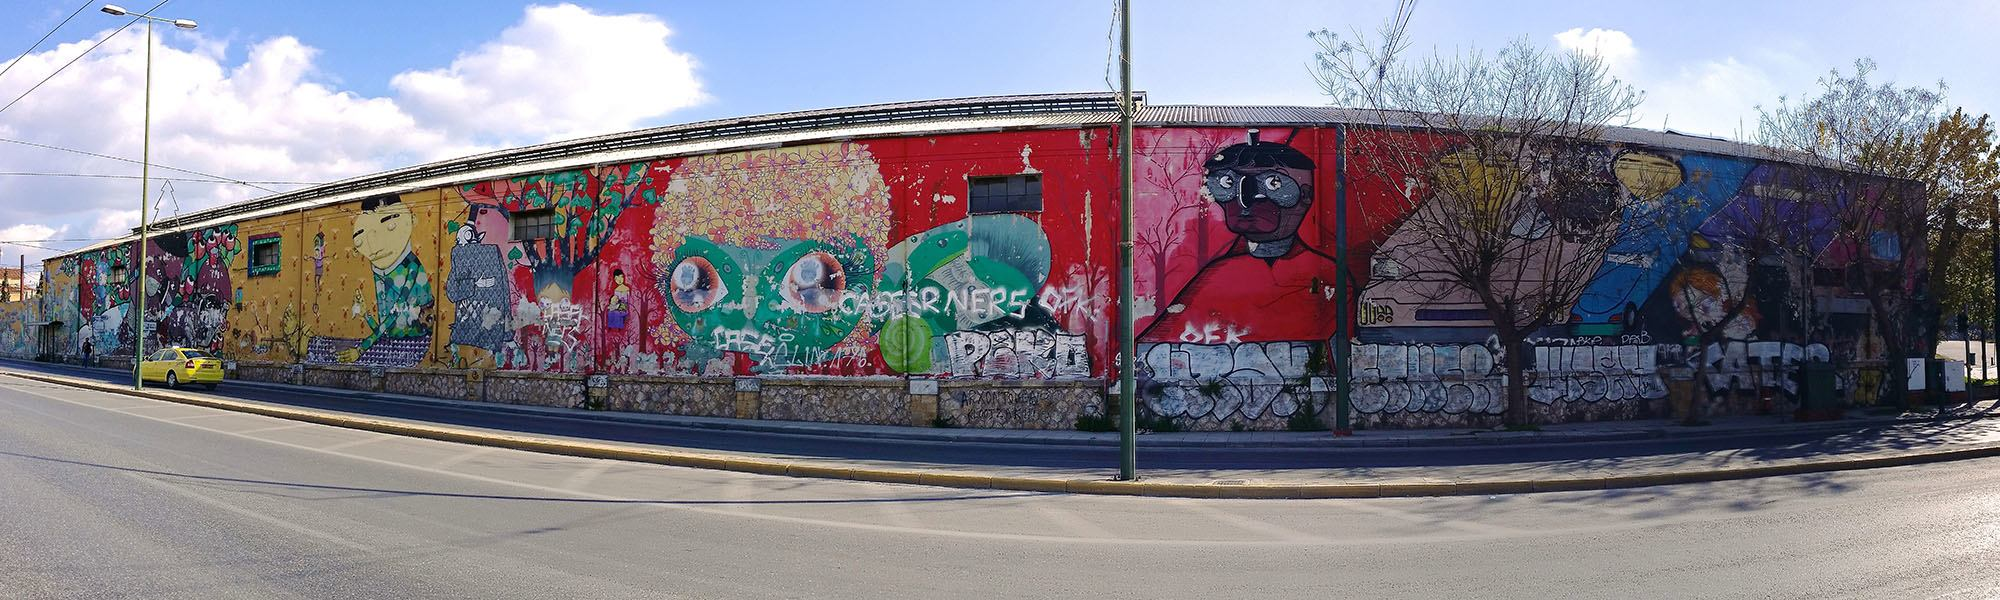 Pireos Street,offbeat things to do in Athens